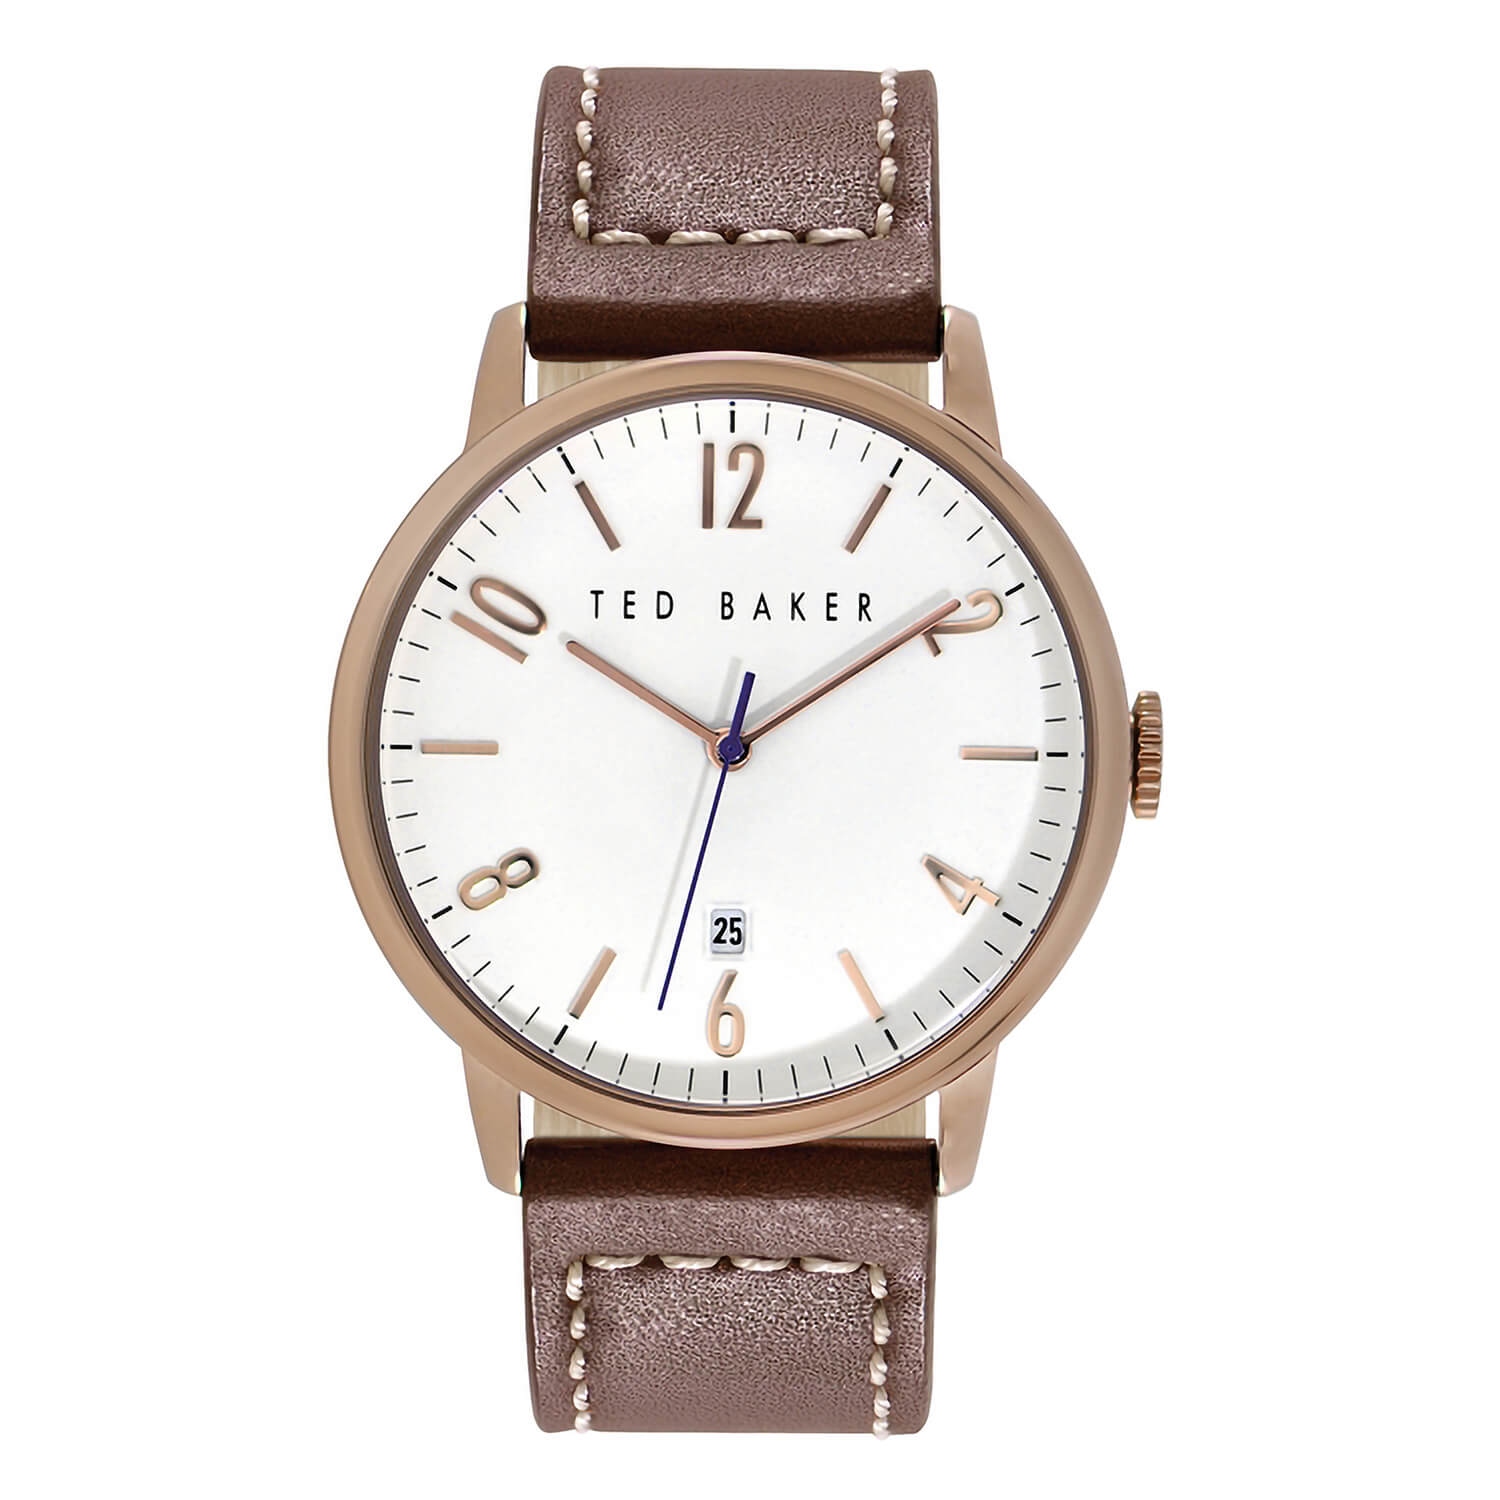 Ted Baker Men's White Dial Brown Leather Strap Watch